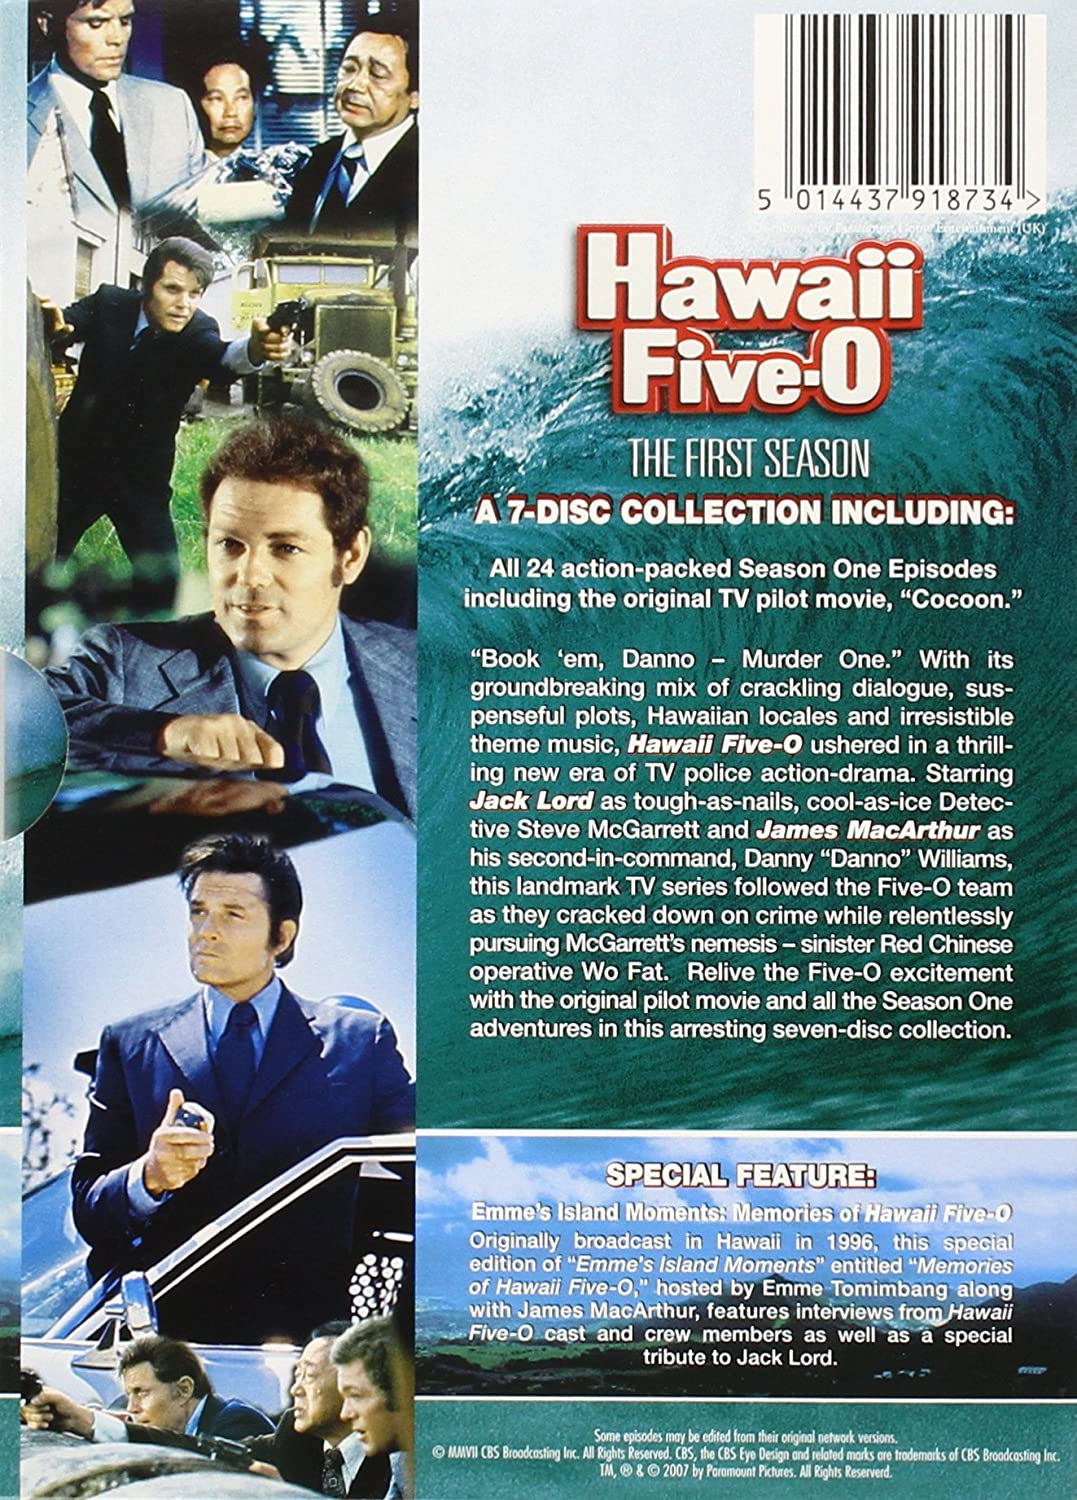 Hawaii Five-O: The First Season [DVD]: Amazon co uk: Jack Lord